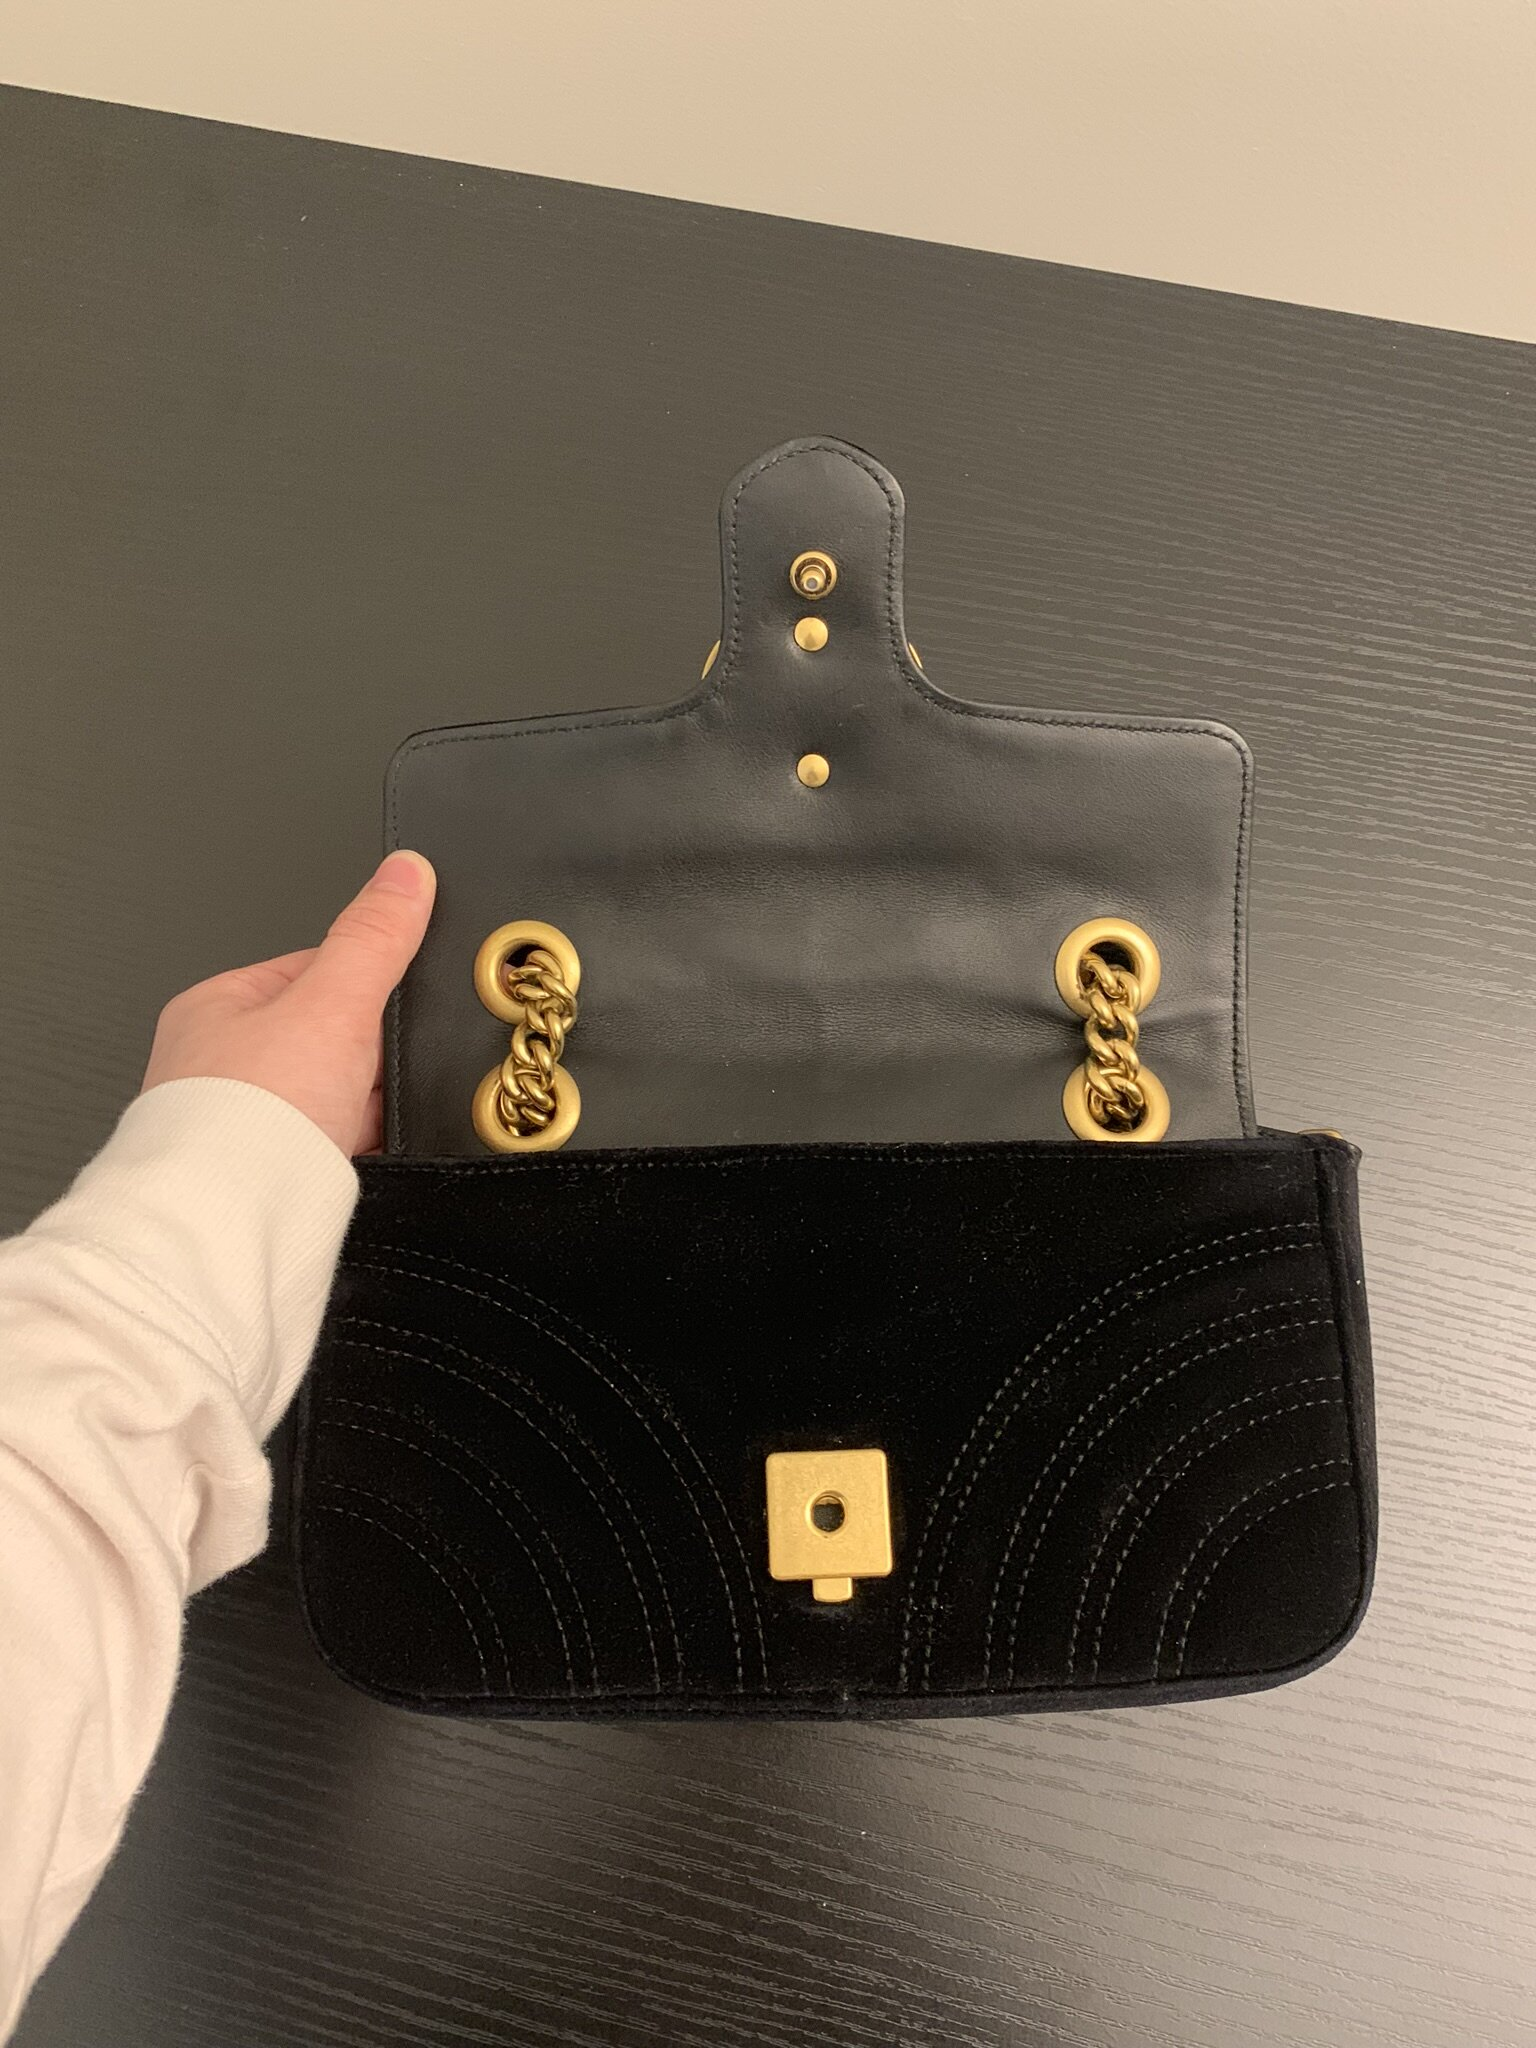 On the inside of the flap, there is denting in the leather due to the opening and closing of the purse. The wear and tear is normal and this is not too bad. This is the condition being that I am gentle with my items.